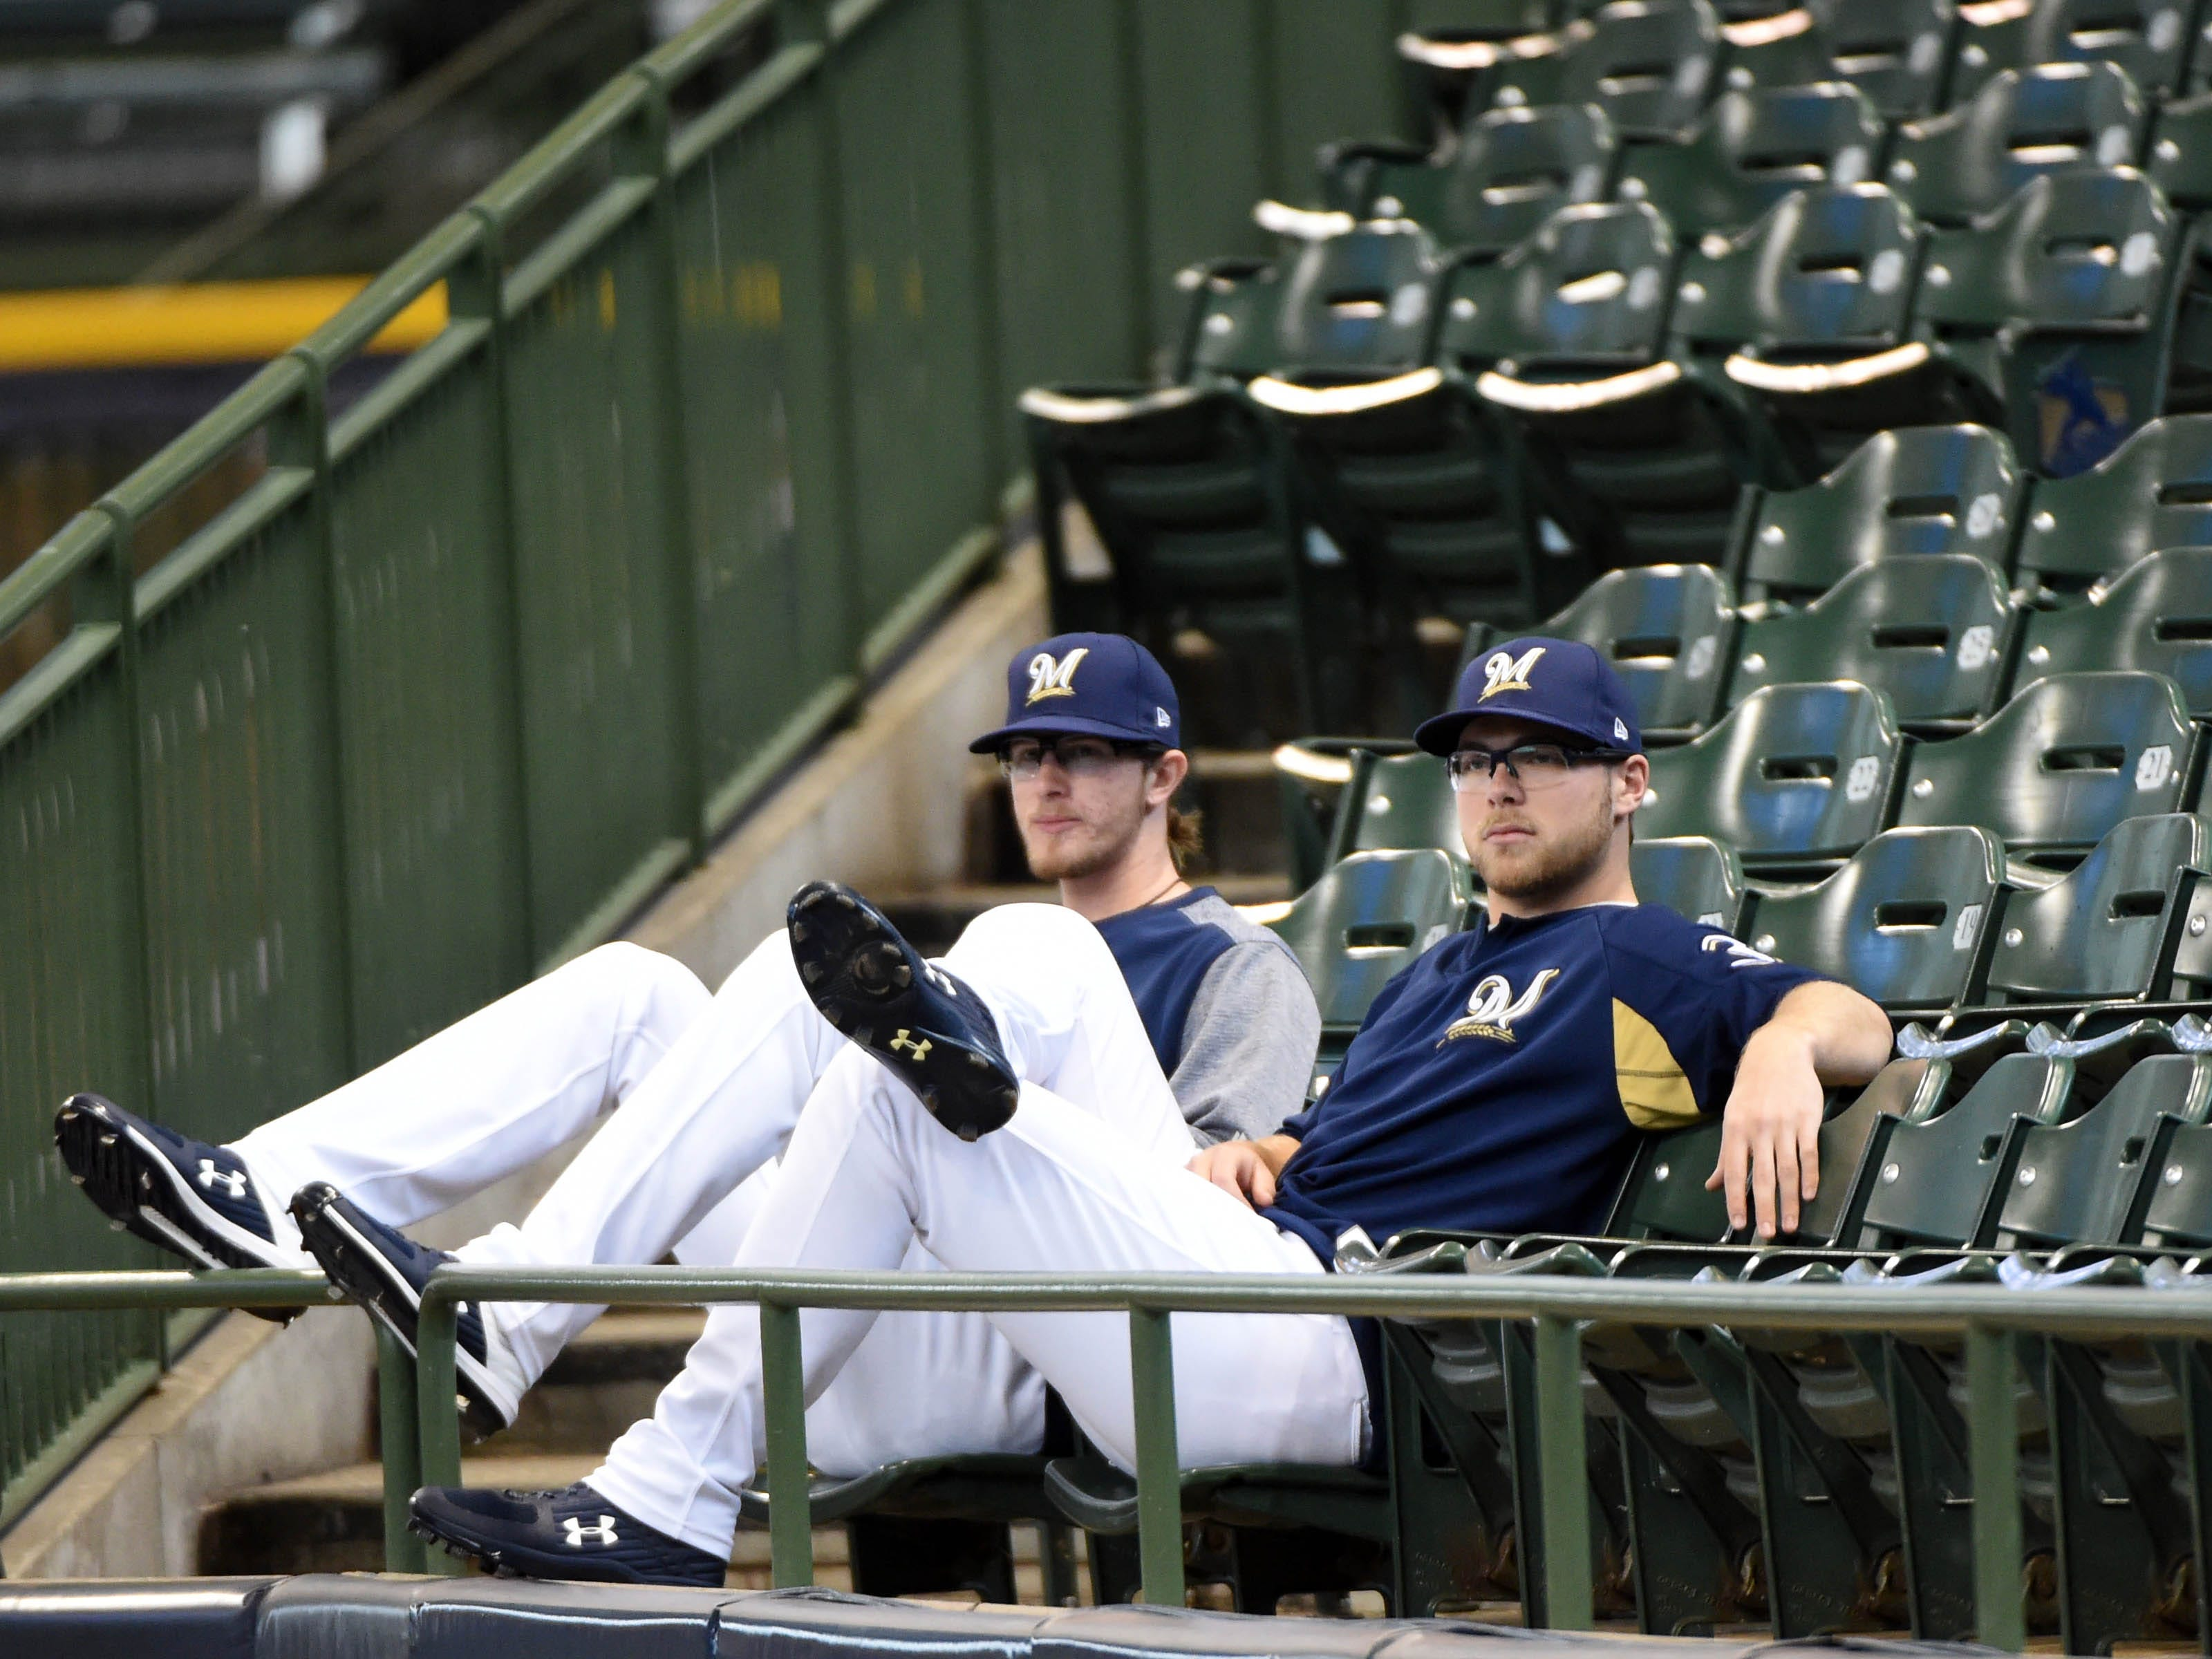 NLCS Game 1: Brewers relief pitcher Josh Hader and starter Corbin Burnes relax in the stands.